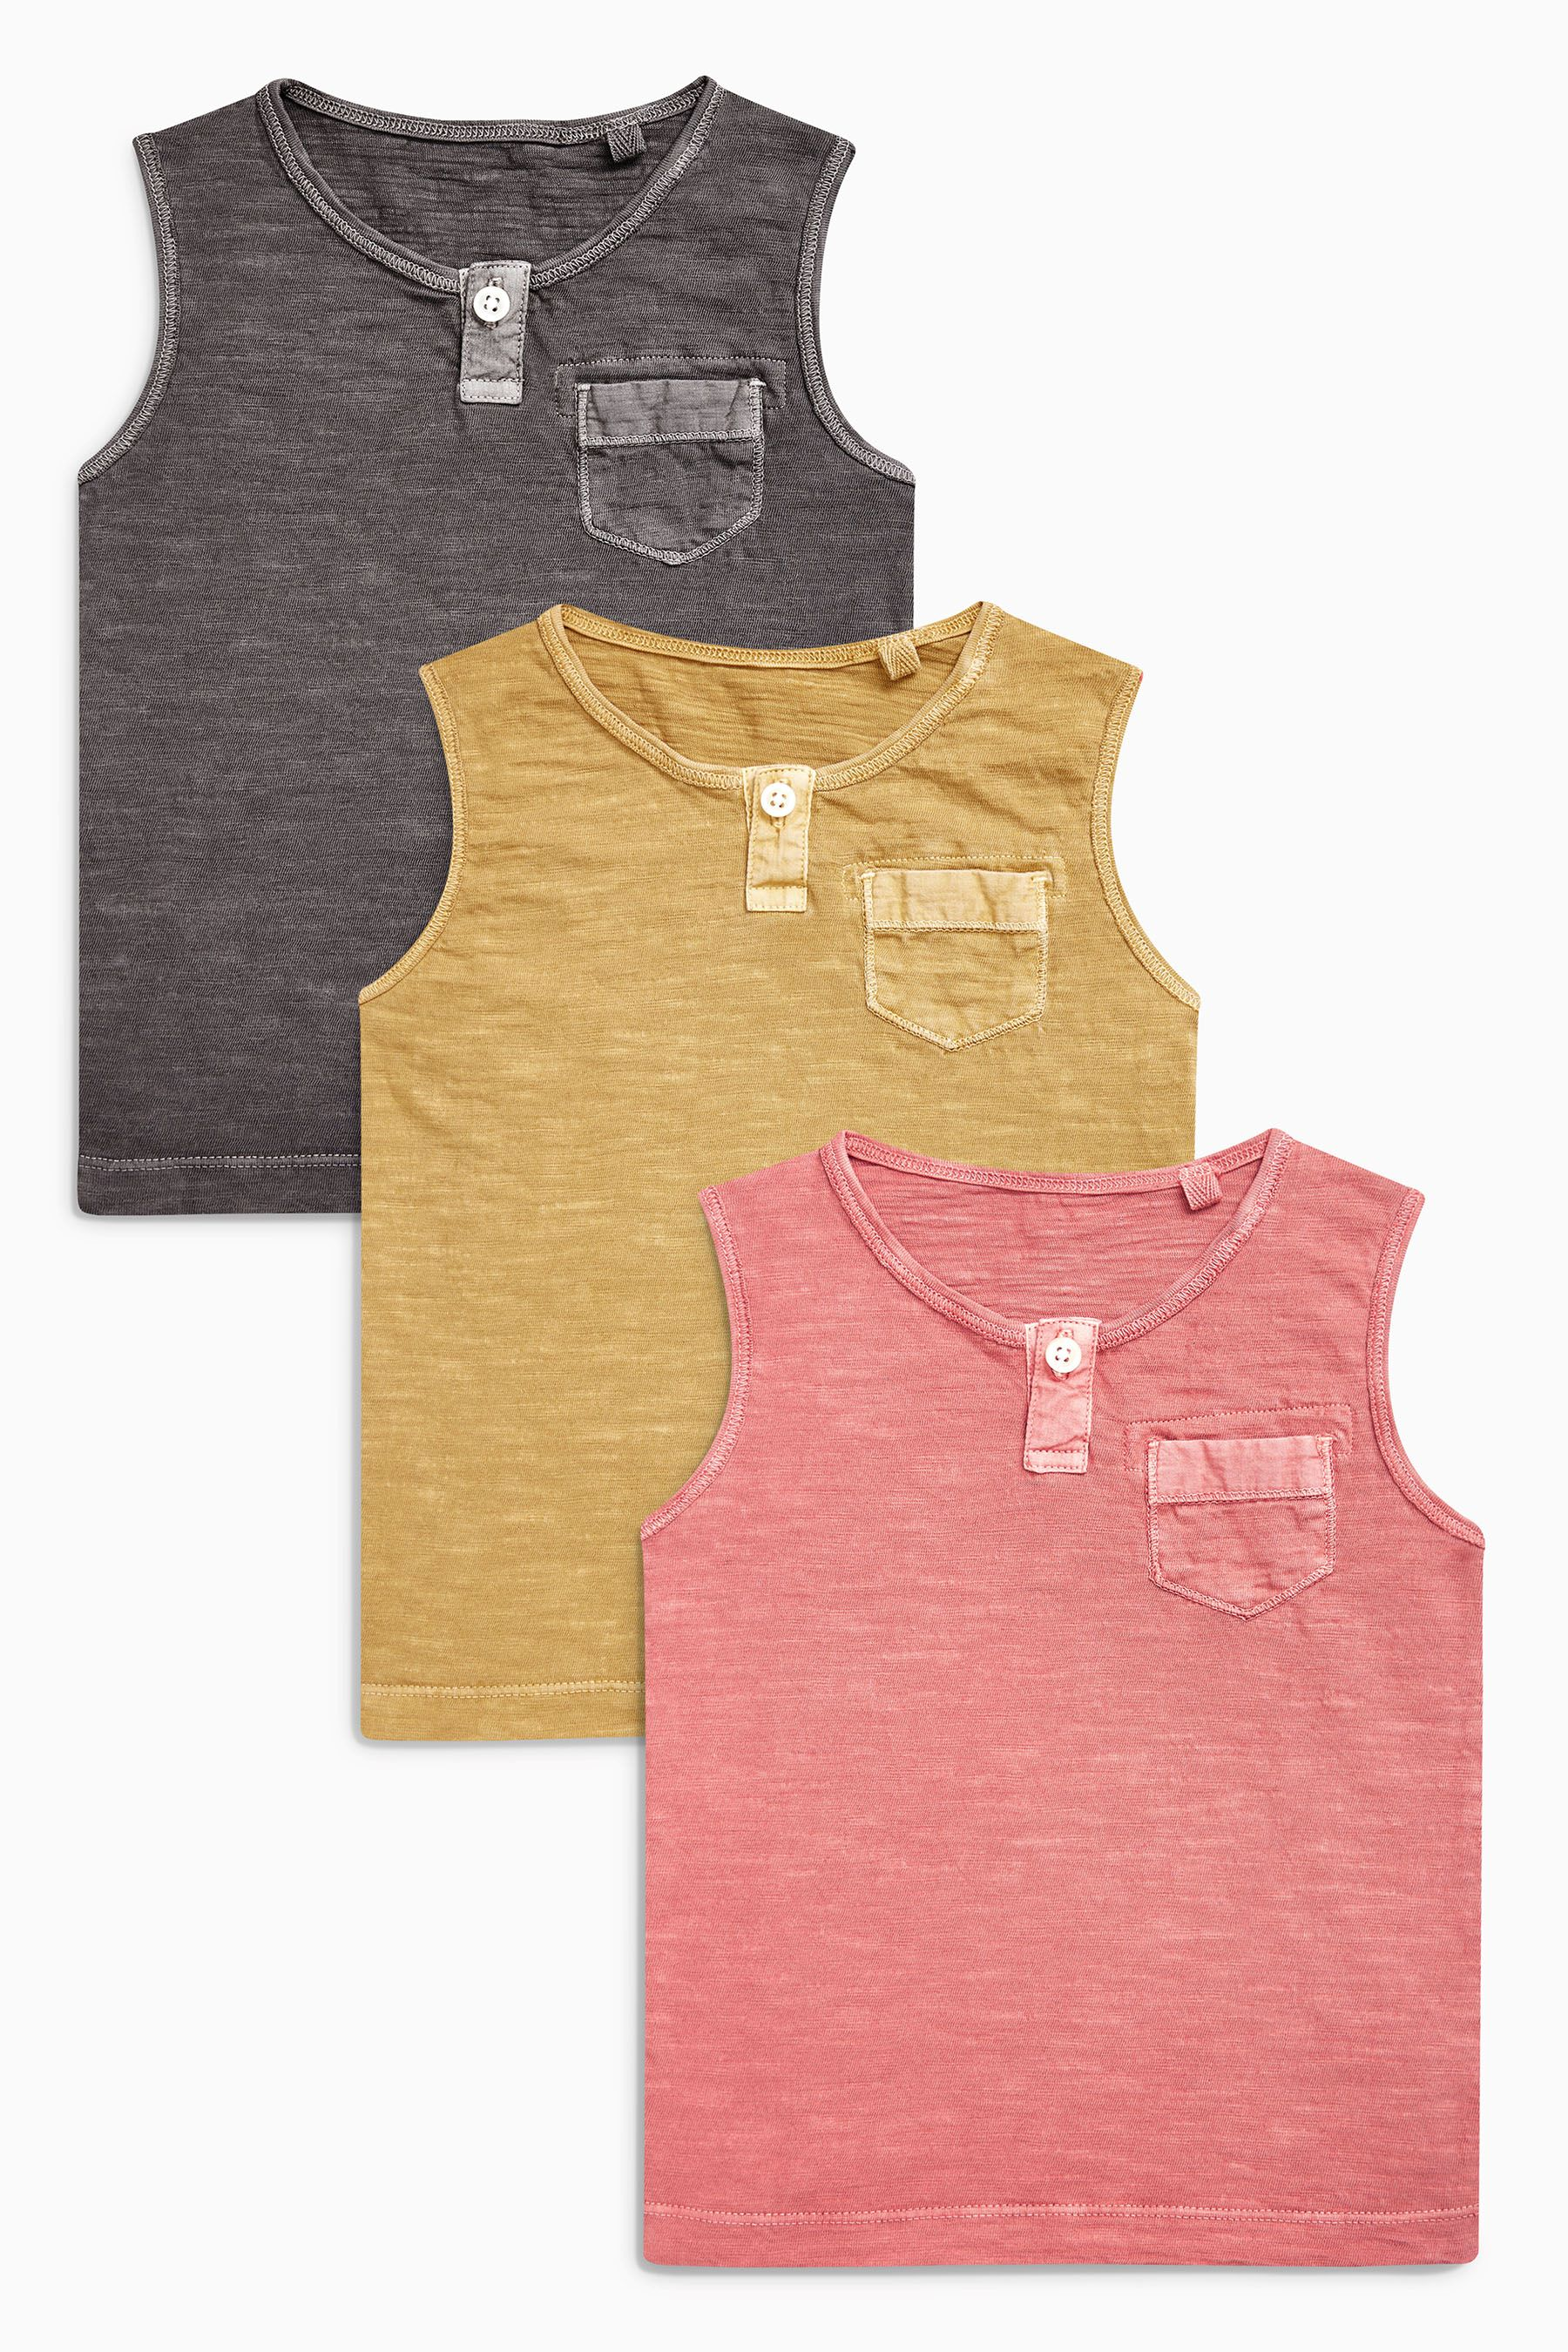 vests-multi-pack